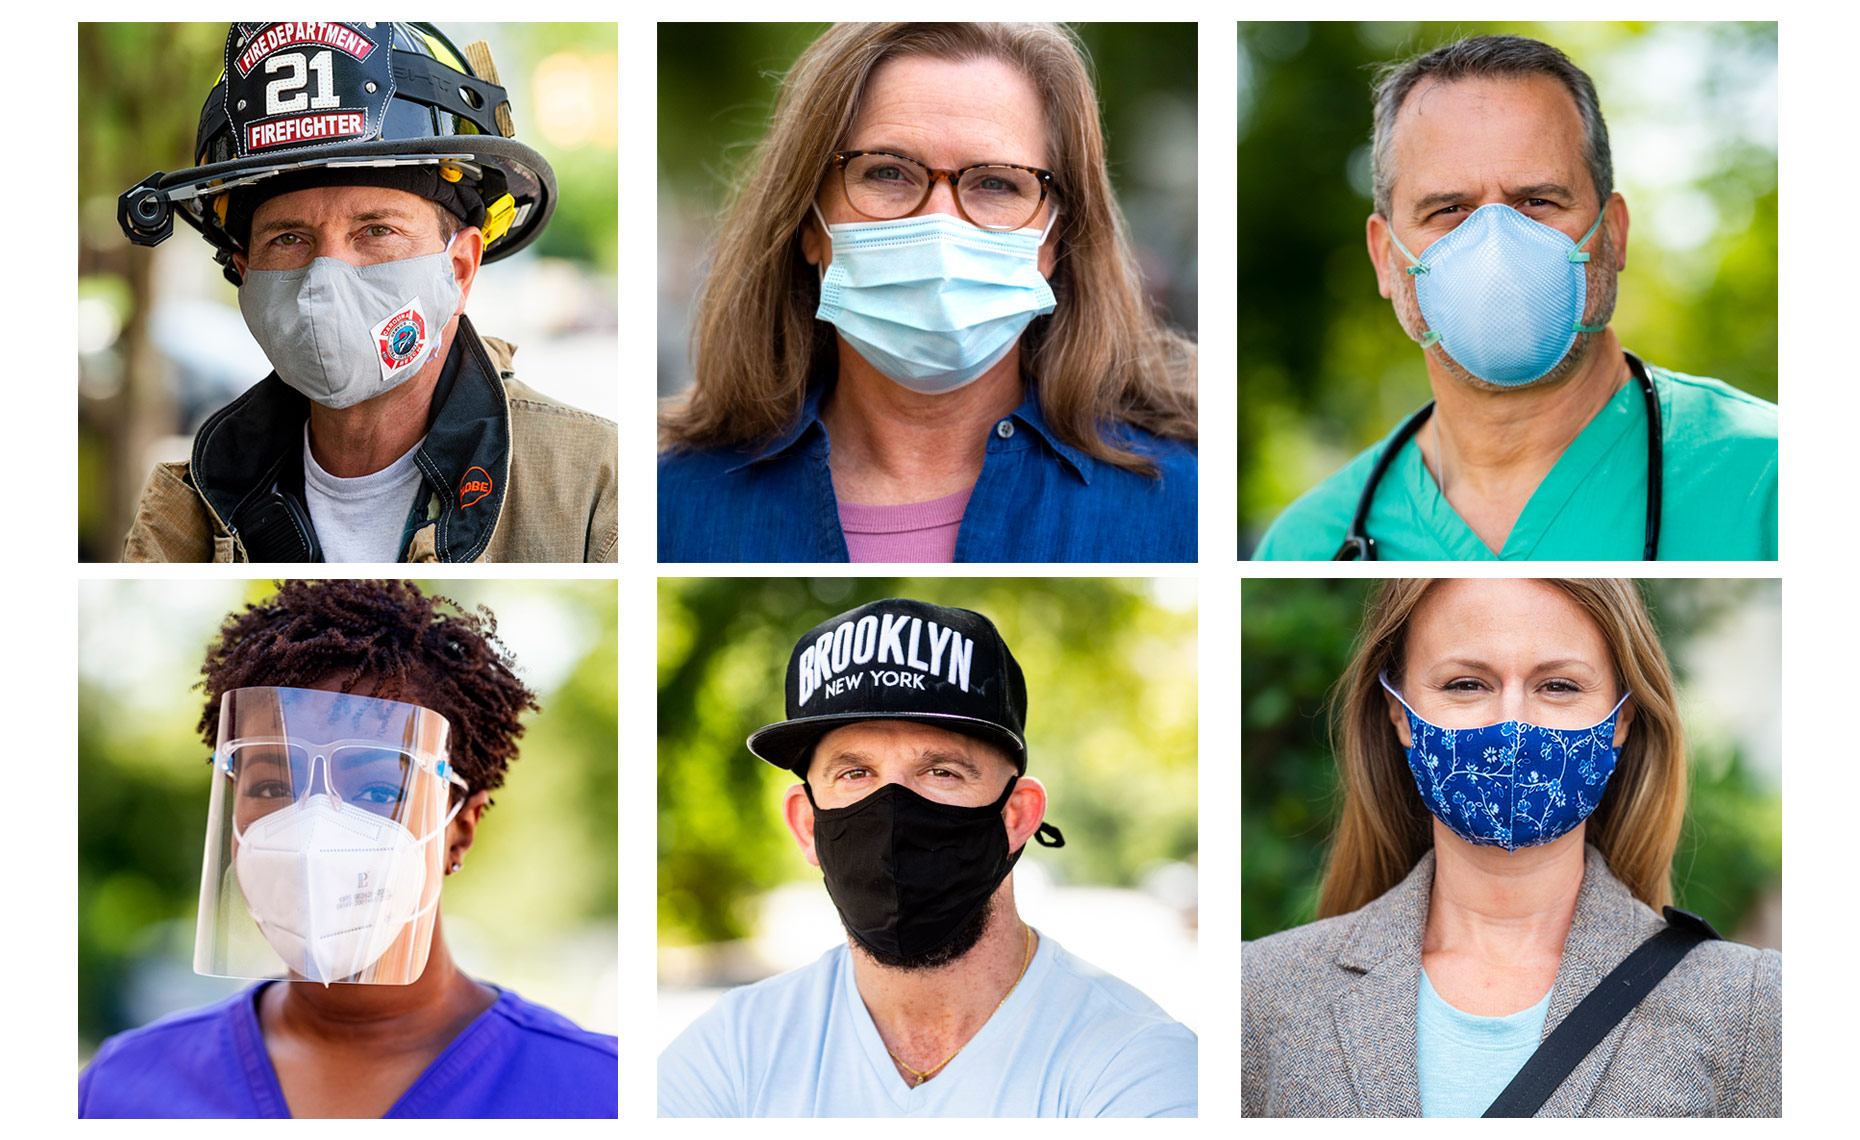 wear a mask campaign Raleigh portraits Bryan Regan photography